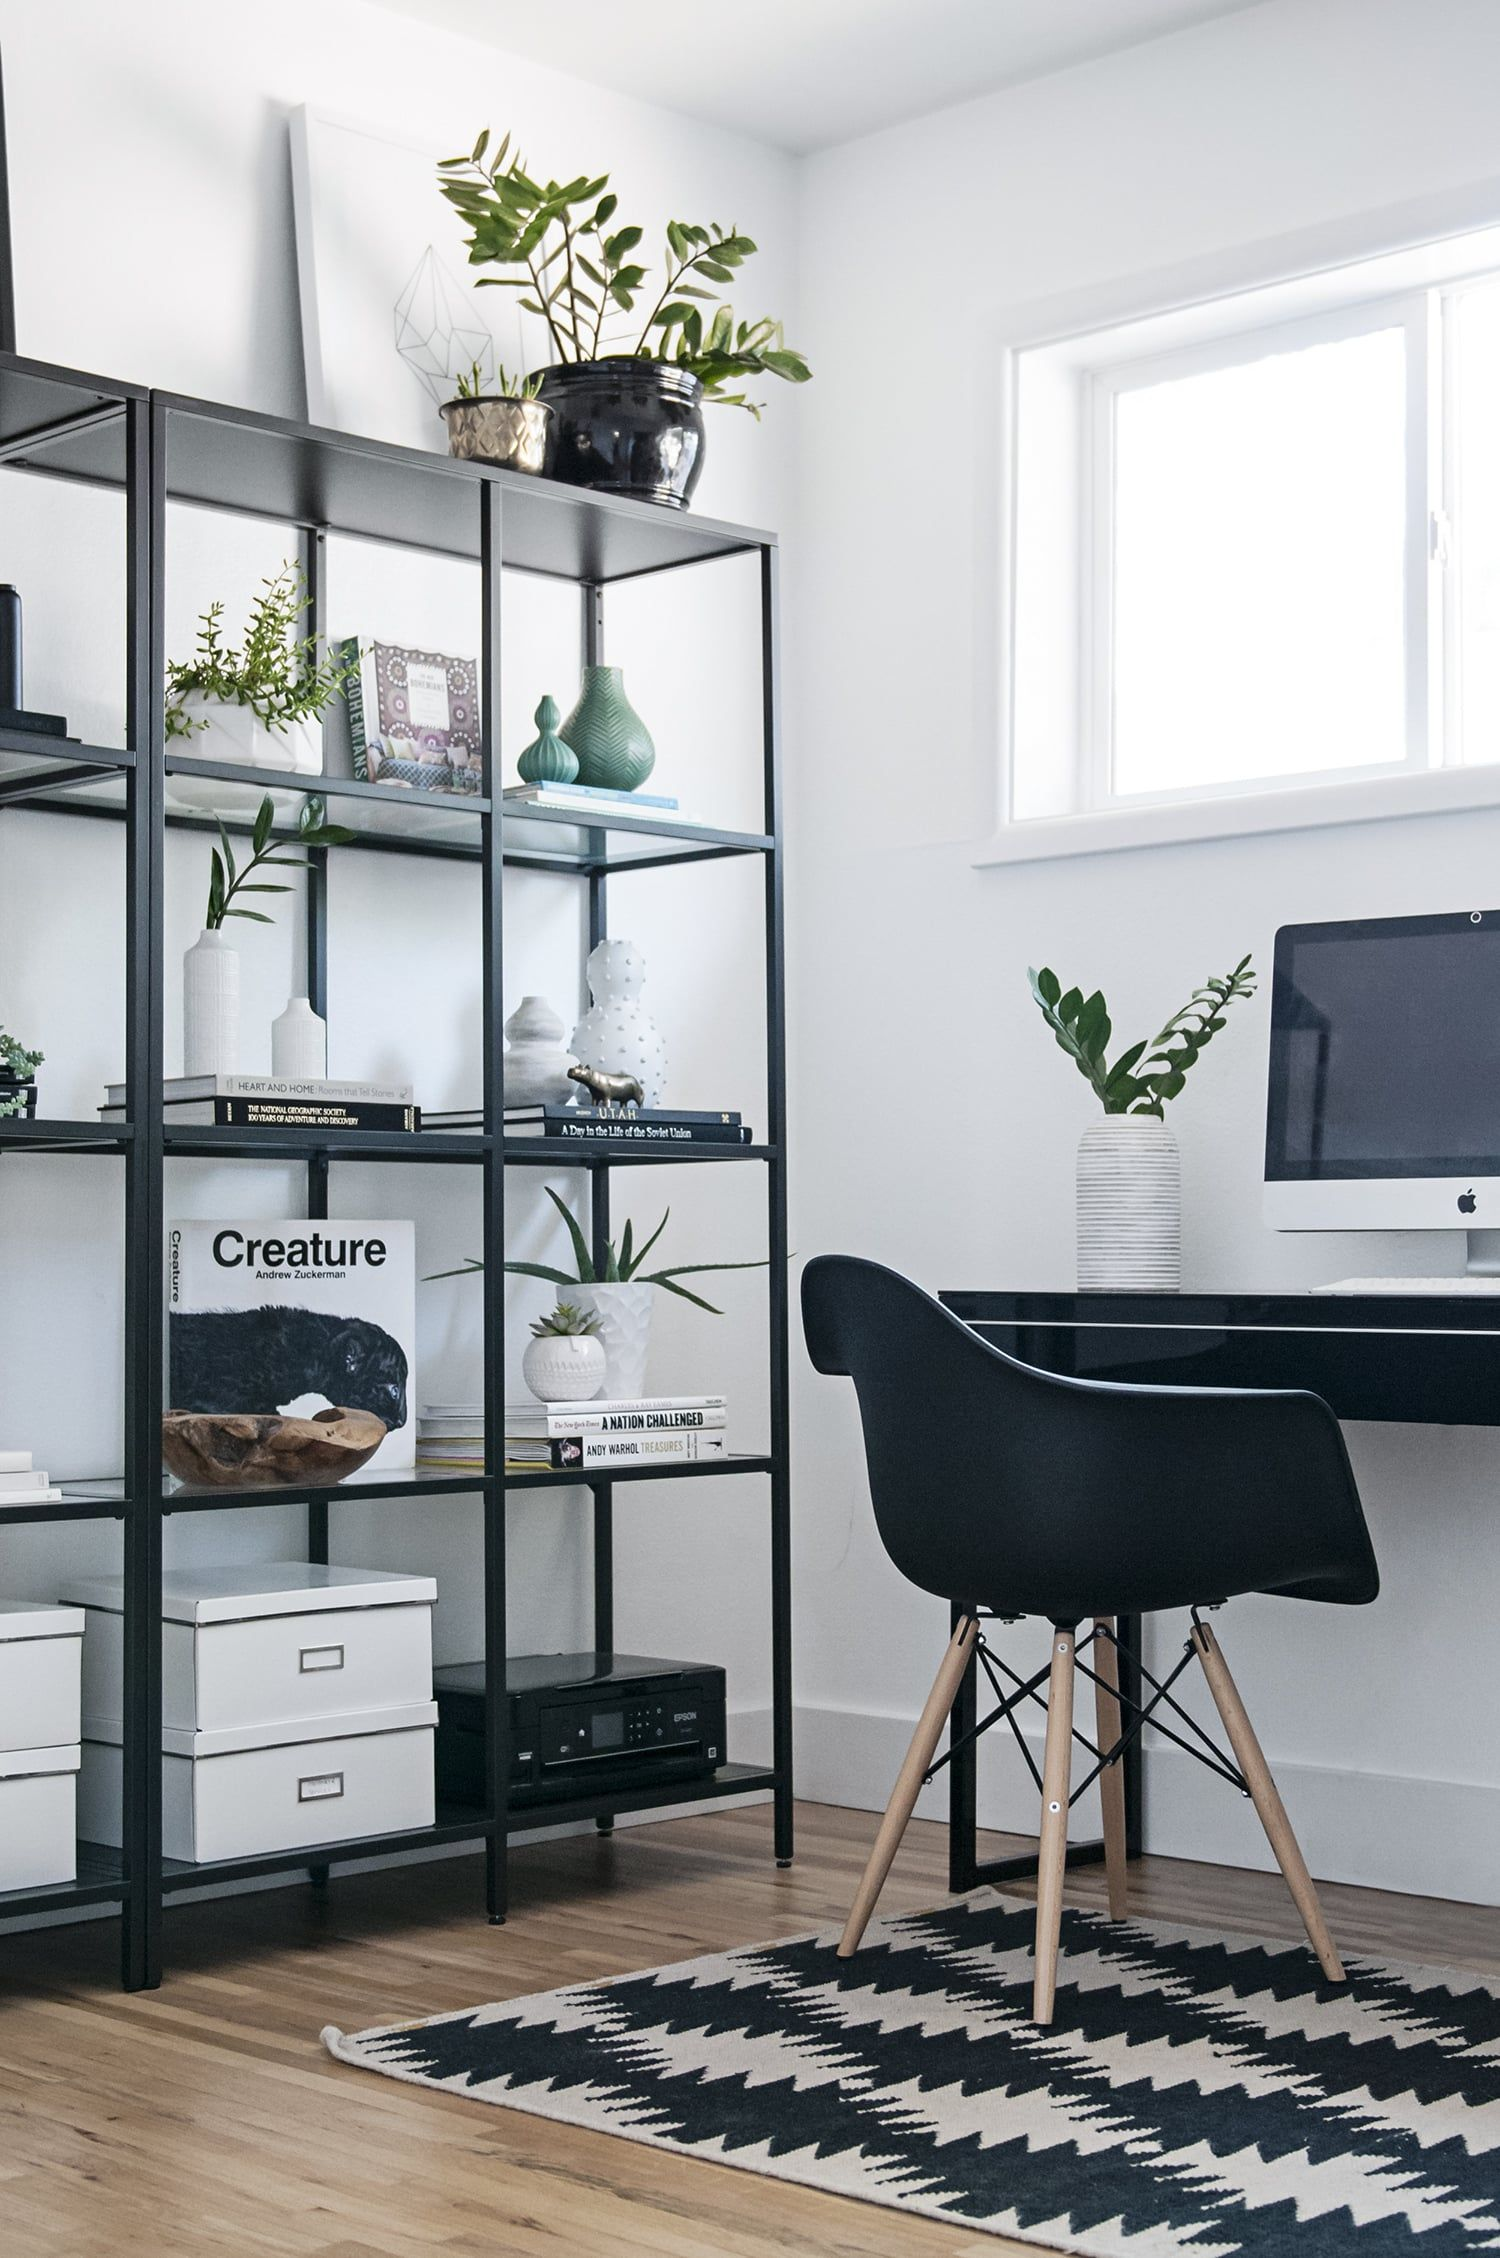 gallery home office shelving wall around the world gallery series by little gold pixel part 9 scandinavian boho walls in utah home tour decor